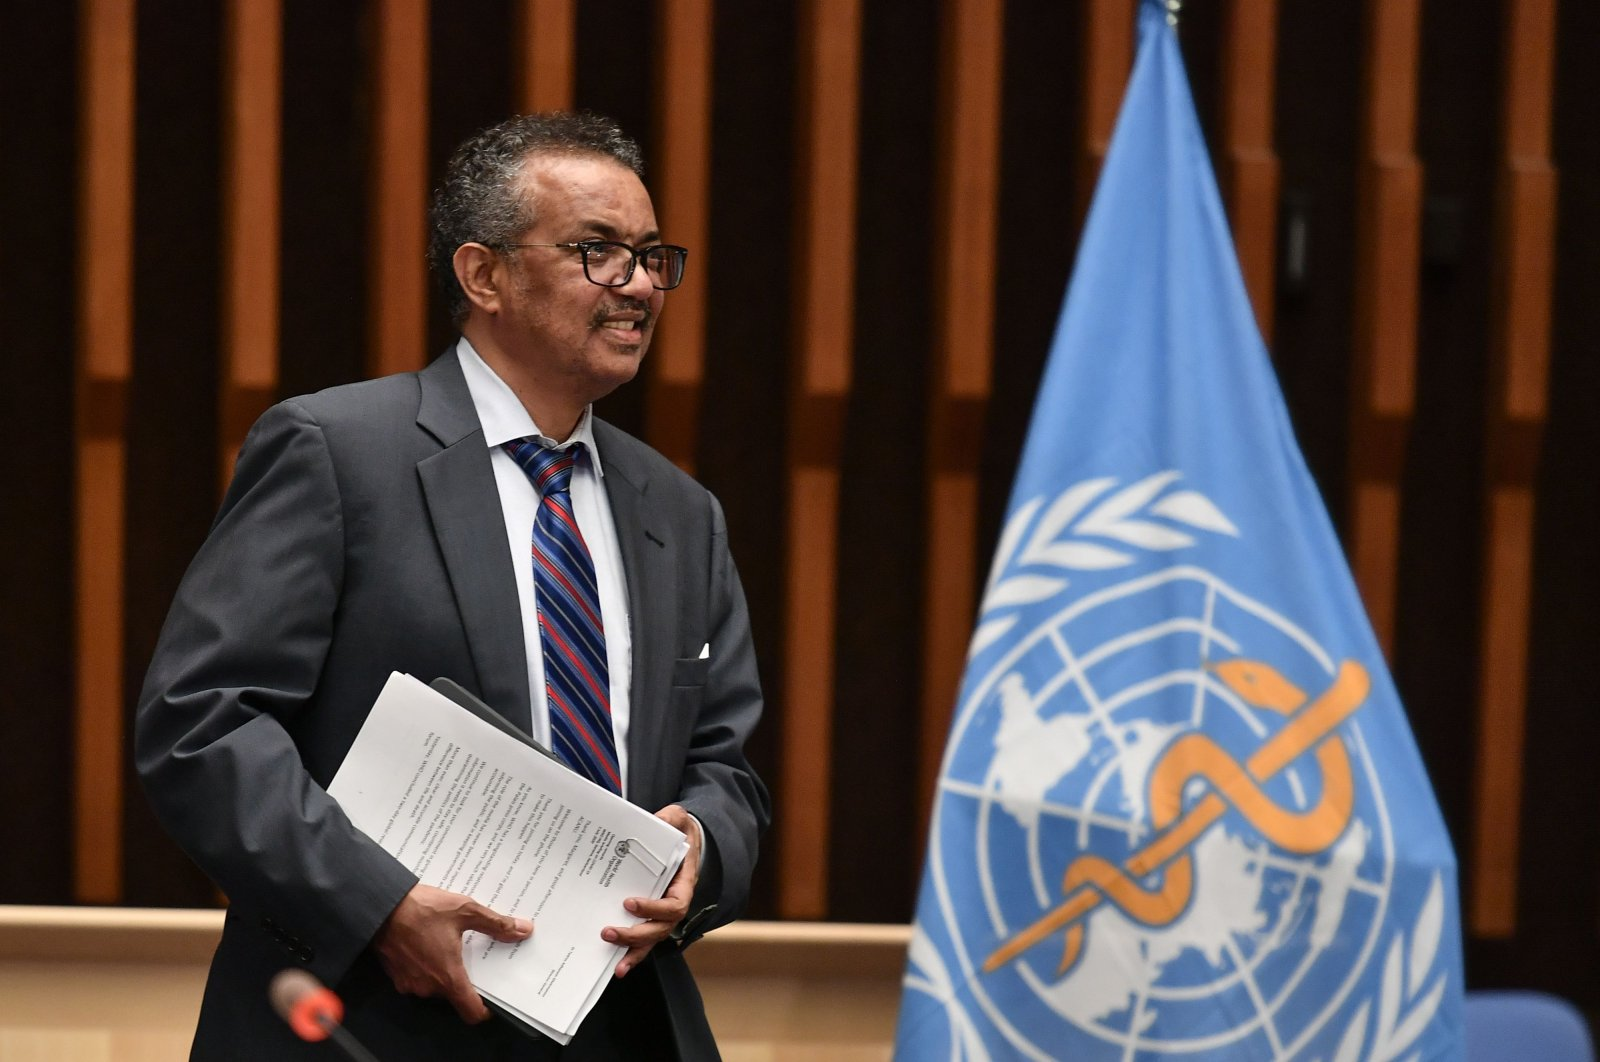 World Health Organization (WHO) Director-General Tedros Adhanom Ghebreyesus arrives a press conference organised by the Geneva Association of United Nations Correspondents (ACANU) amid the COVID-19 outbreak, caused by the novel coronavirus at WHO headquarters in Geneva on July 3, 2020. (AFP Photo)